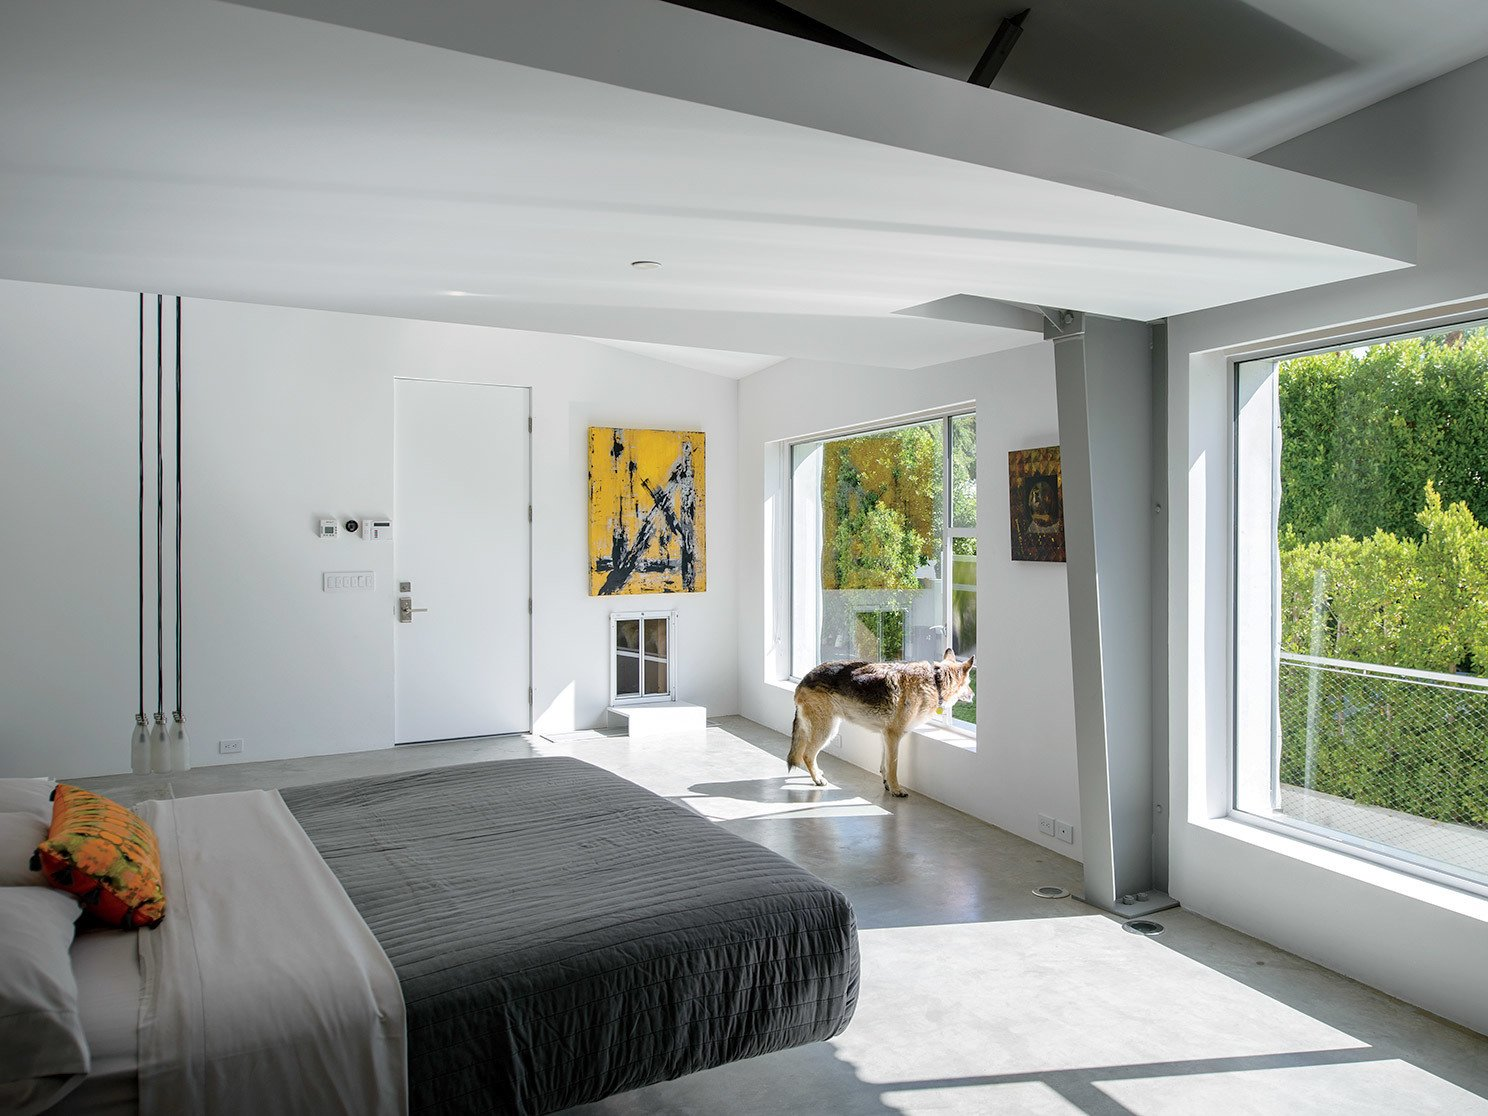 In the master bedroom, a Droog Milk Bottle lamp hangs next to a Fluttua Bed designed by Daniele Lago. An artwork by Brooke Westlund hangs over a custom pet door for the client's dog, Kona. Tagged: Bedroom, Concrete Floor, and Bed.  Photo 2 of 25 in 25 Dogs Living in the Modern World from An Energy-Efficient Hybrid Prefab Keeps Cool in the Palm Springs Desert